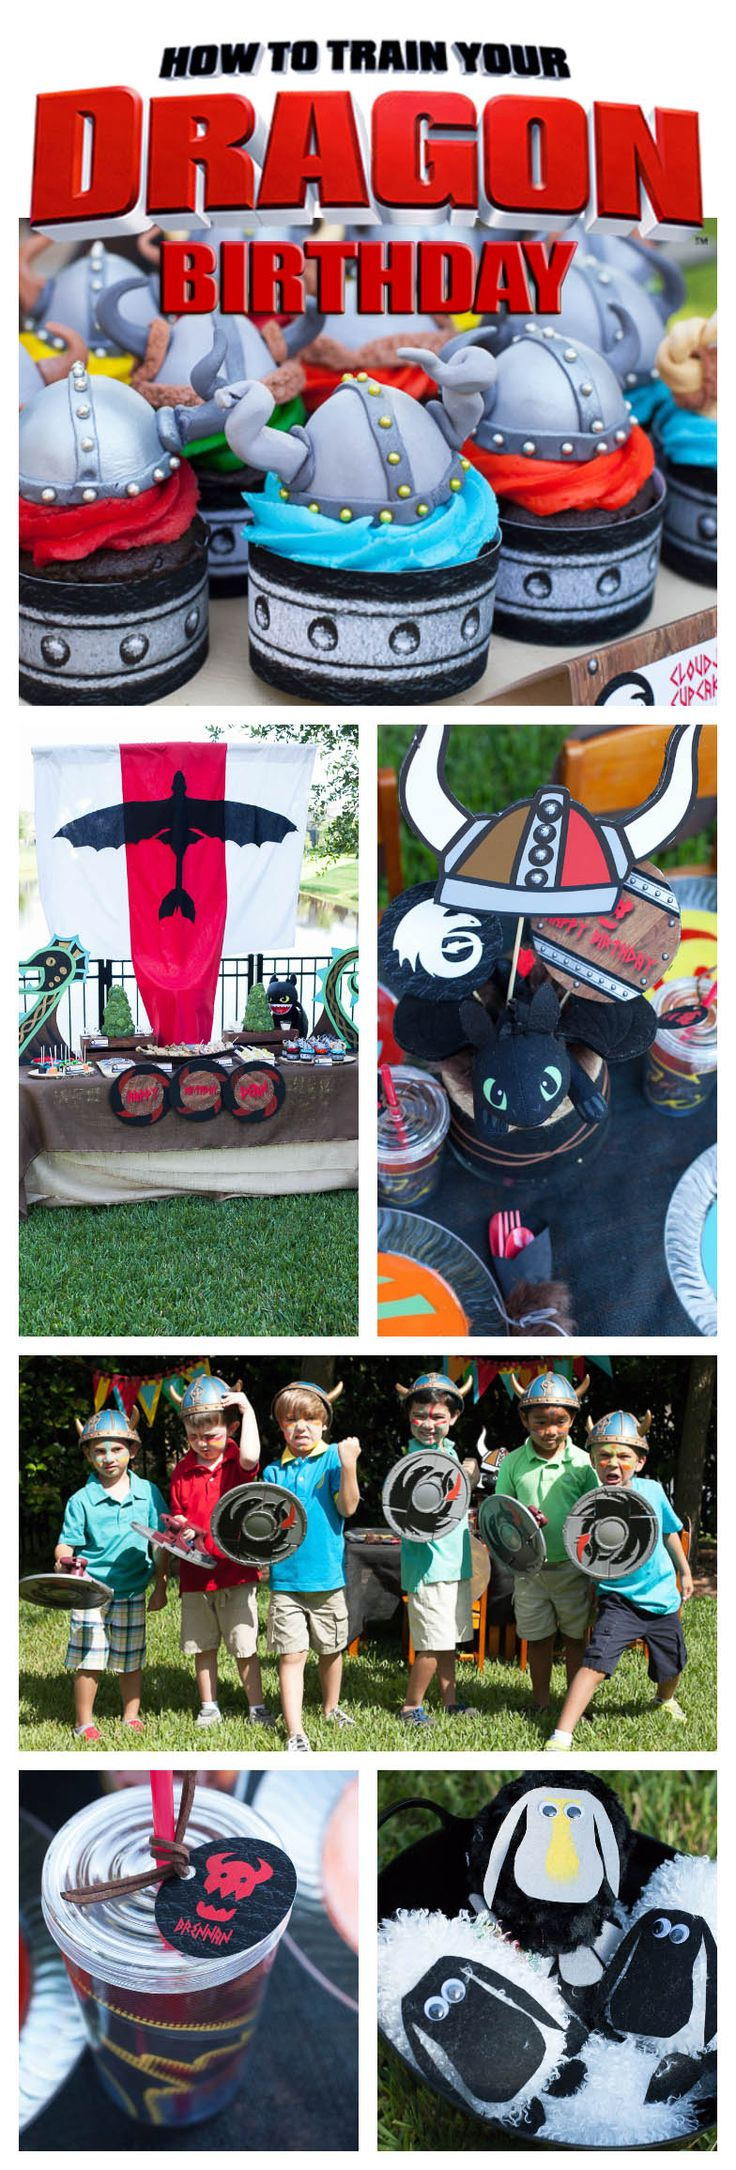 How to Train Your Dragon birthday party inspiration in collaboration with @Target #viking